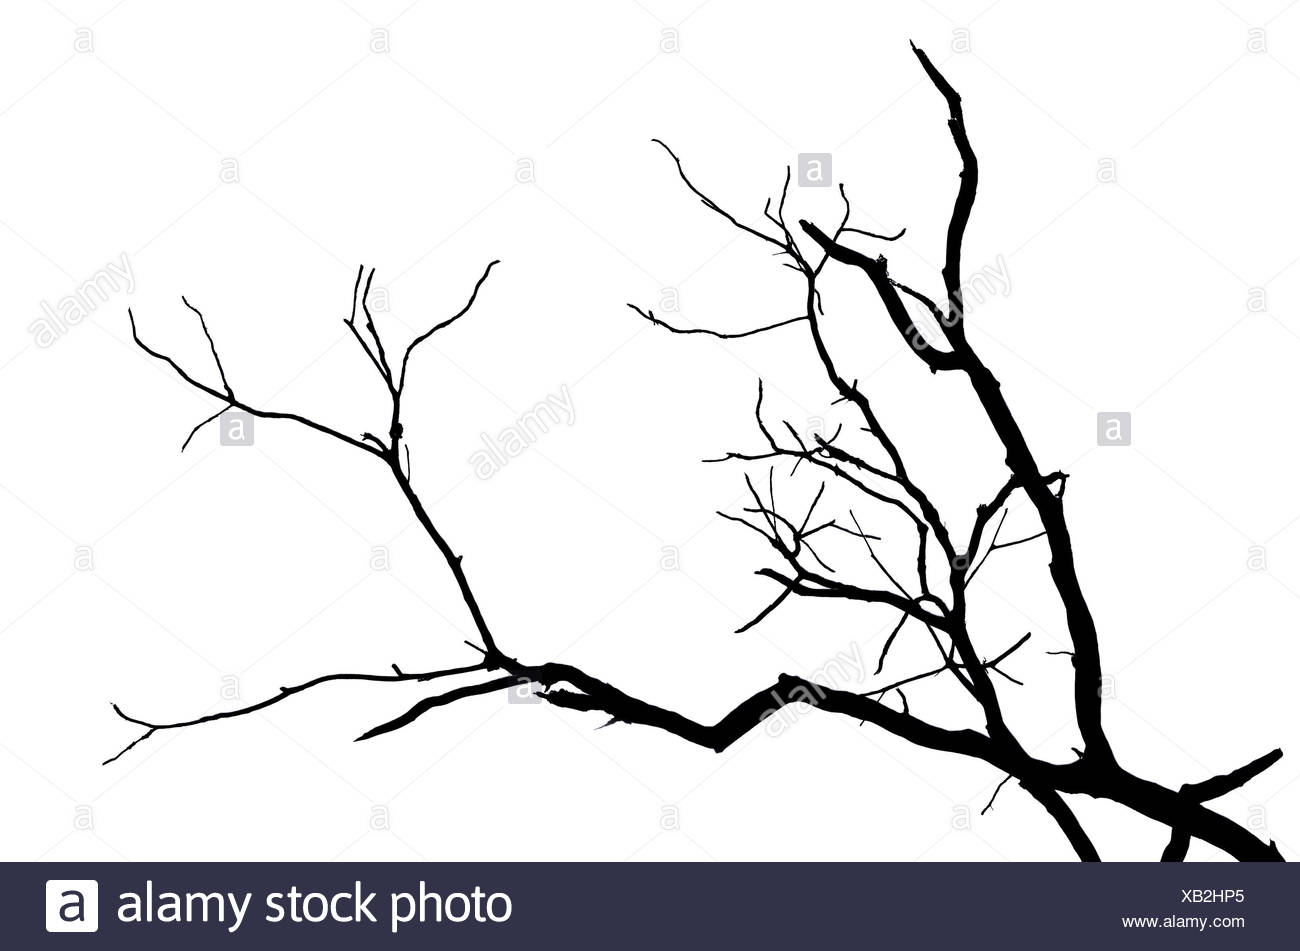 Tree Branch Drawing High Resolution Stock Photography And Images Alamy